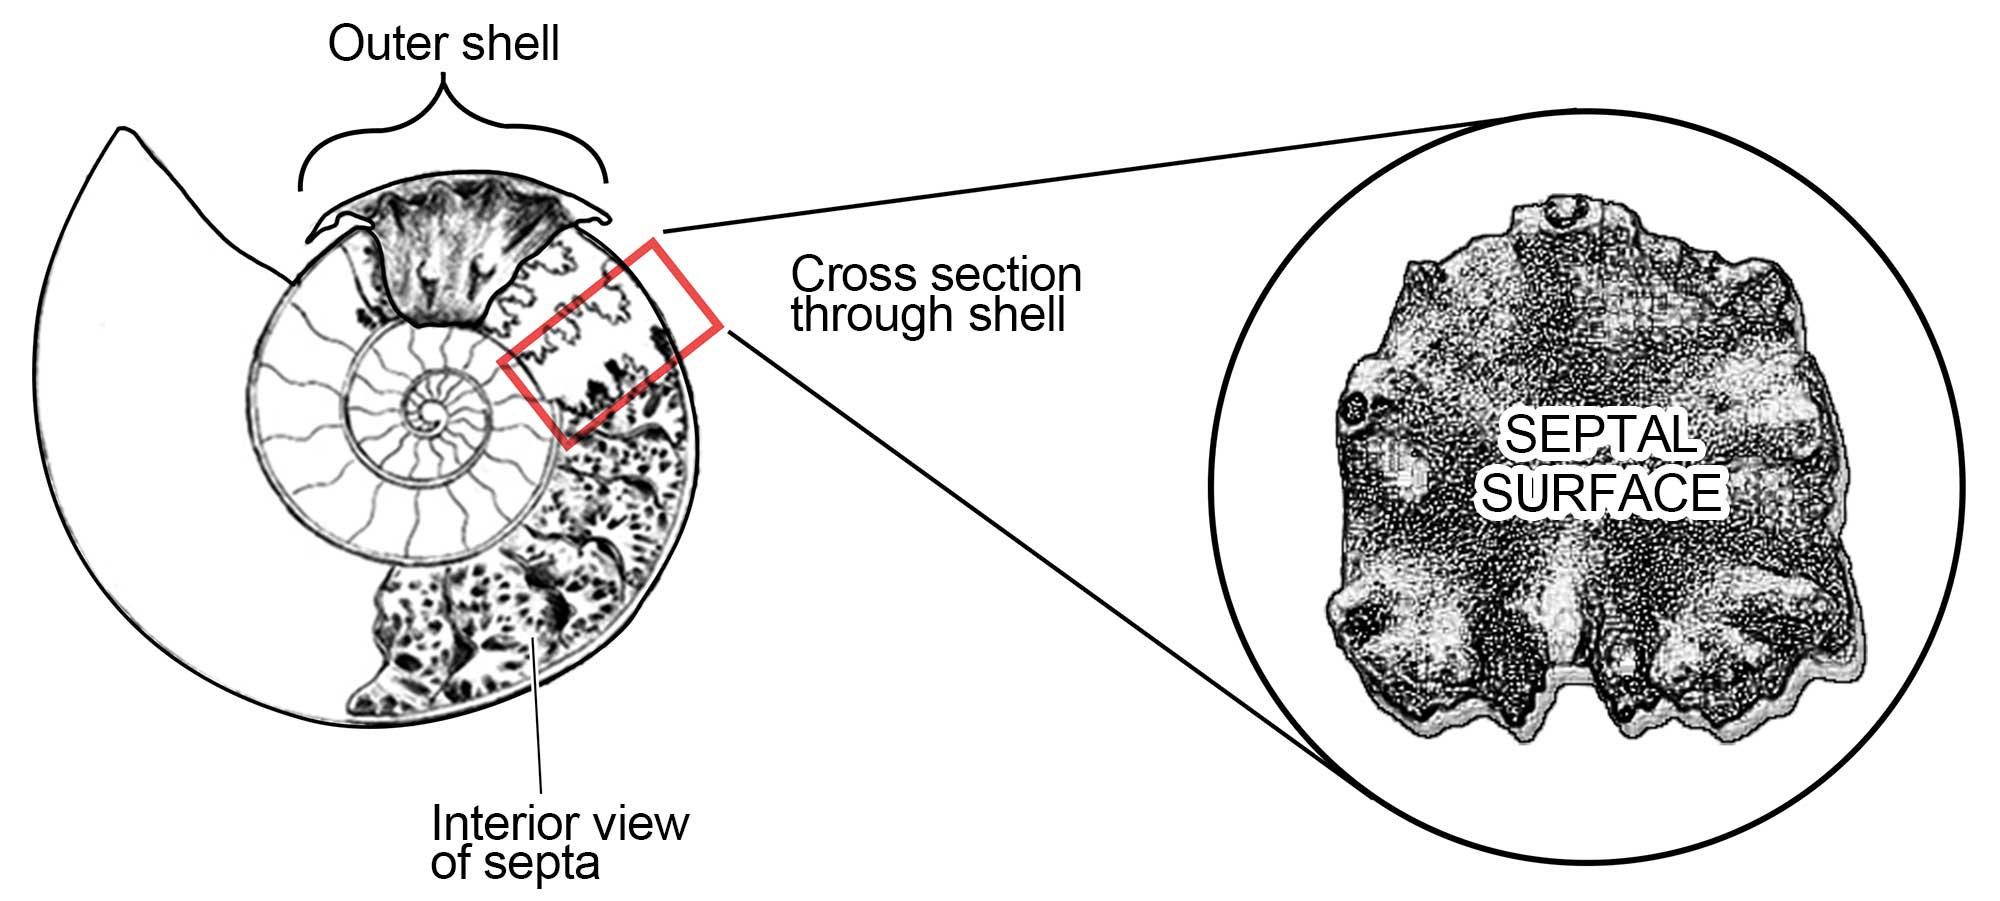 Drawings showing the parts of ammonoids.